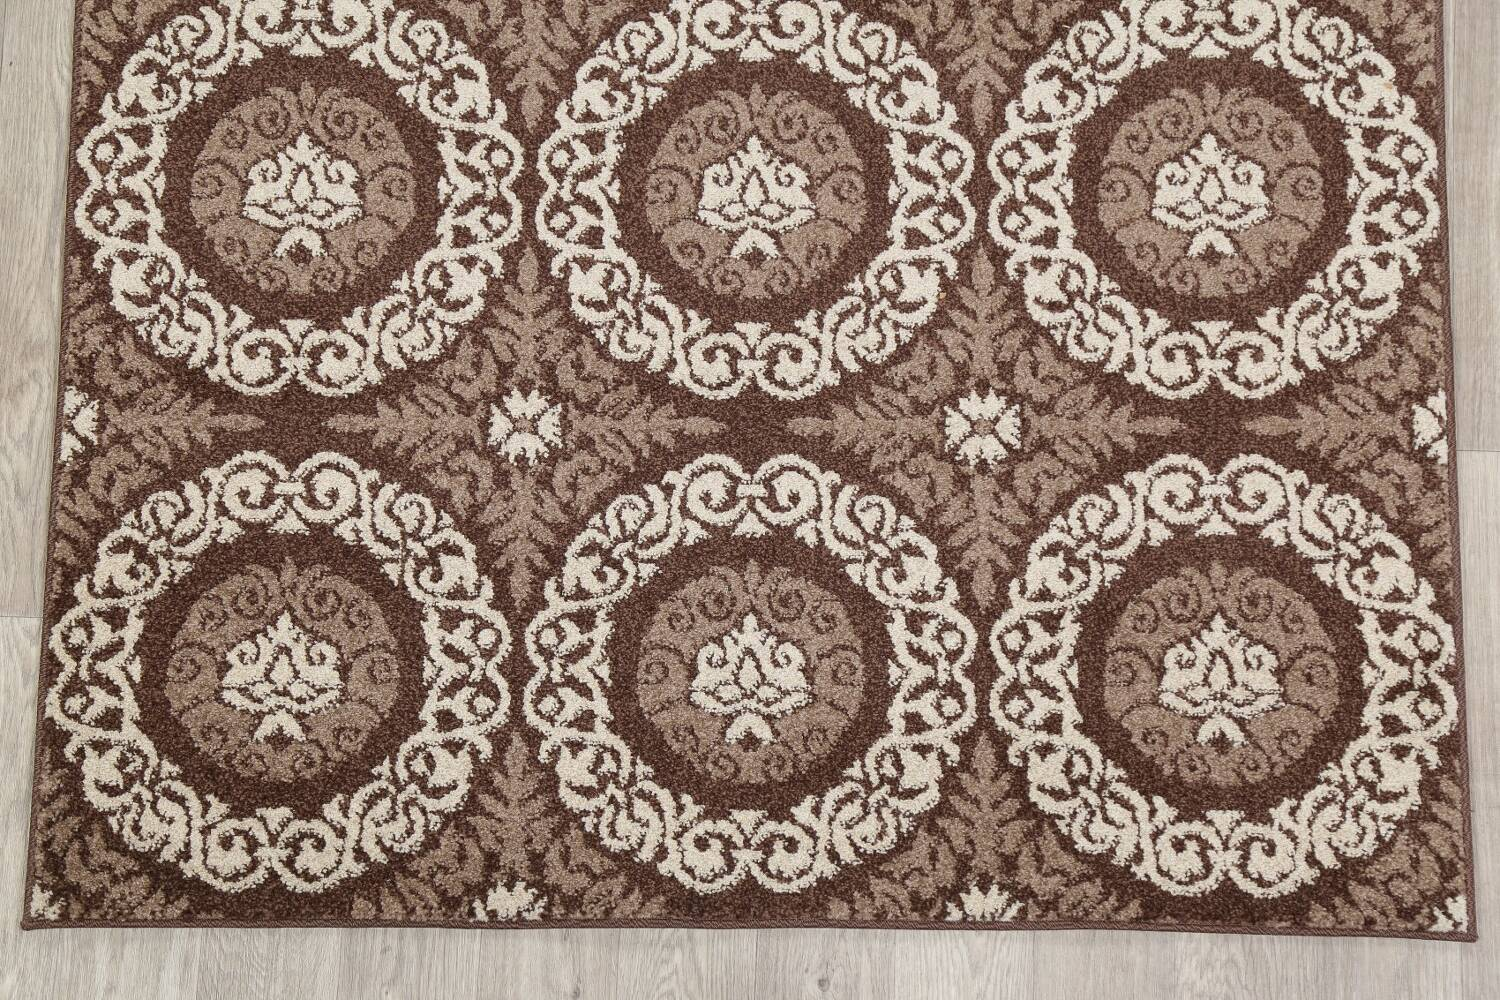 Beige & Brown Tuscan Chester Area Rug 5x7 image 4